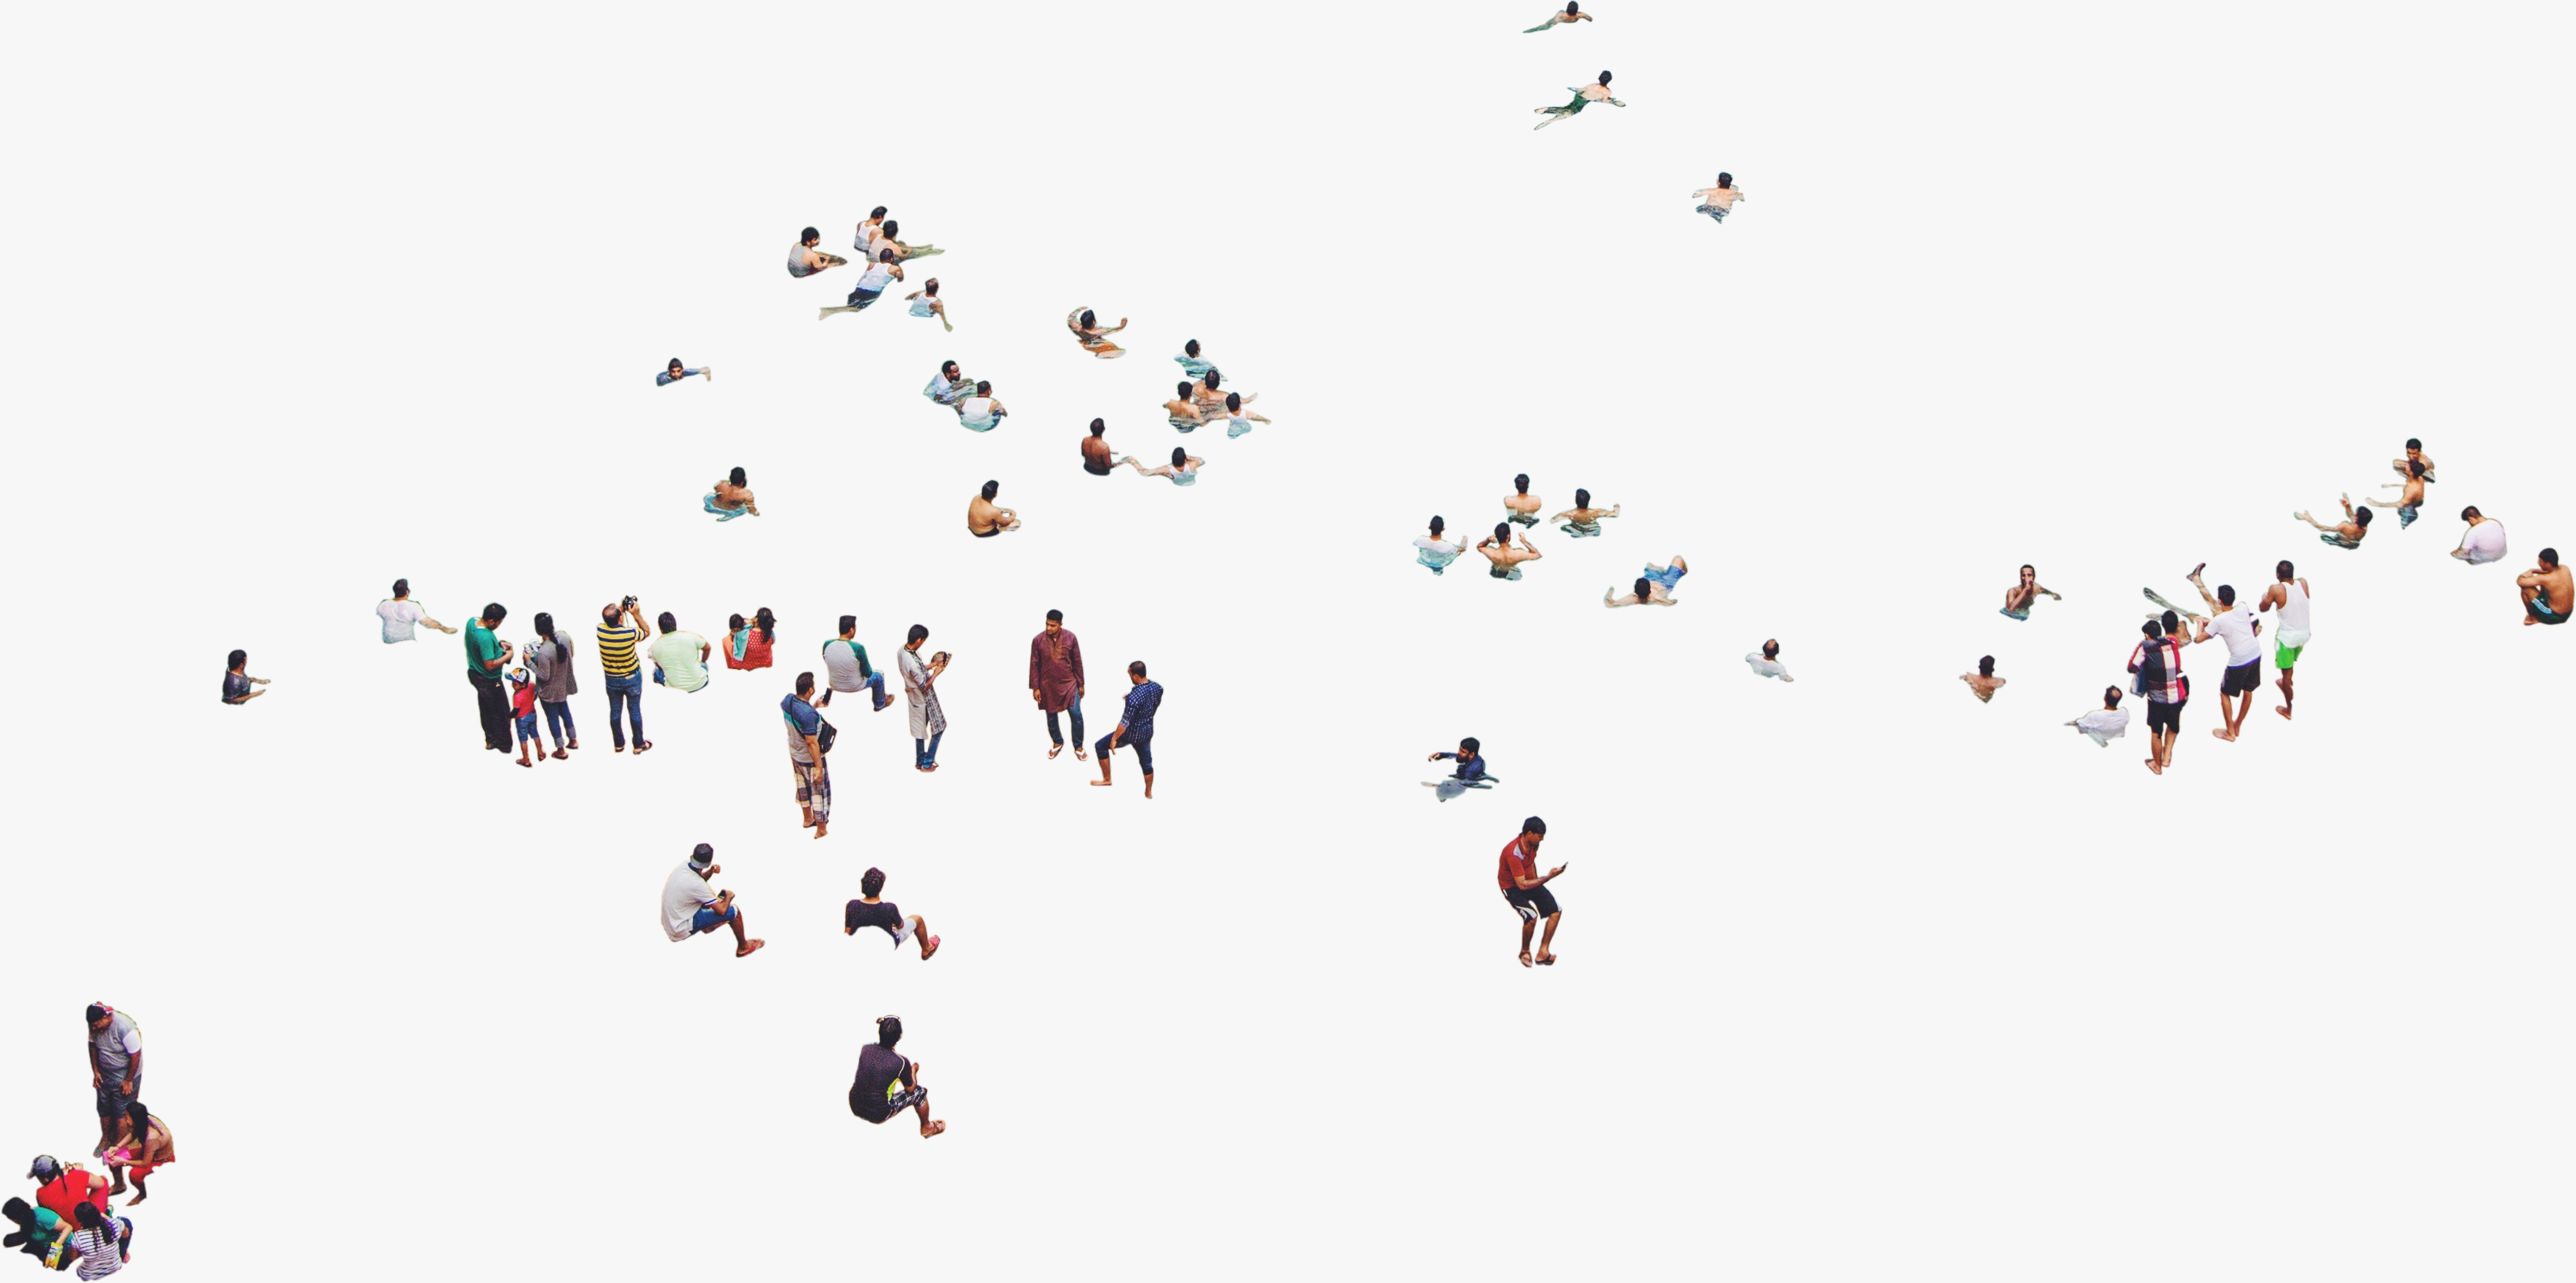 Group Of People At Beach Aerial View Png Aerial View People Png People Cutout